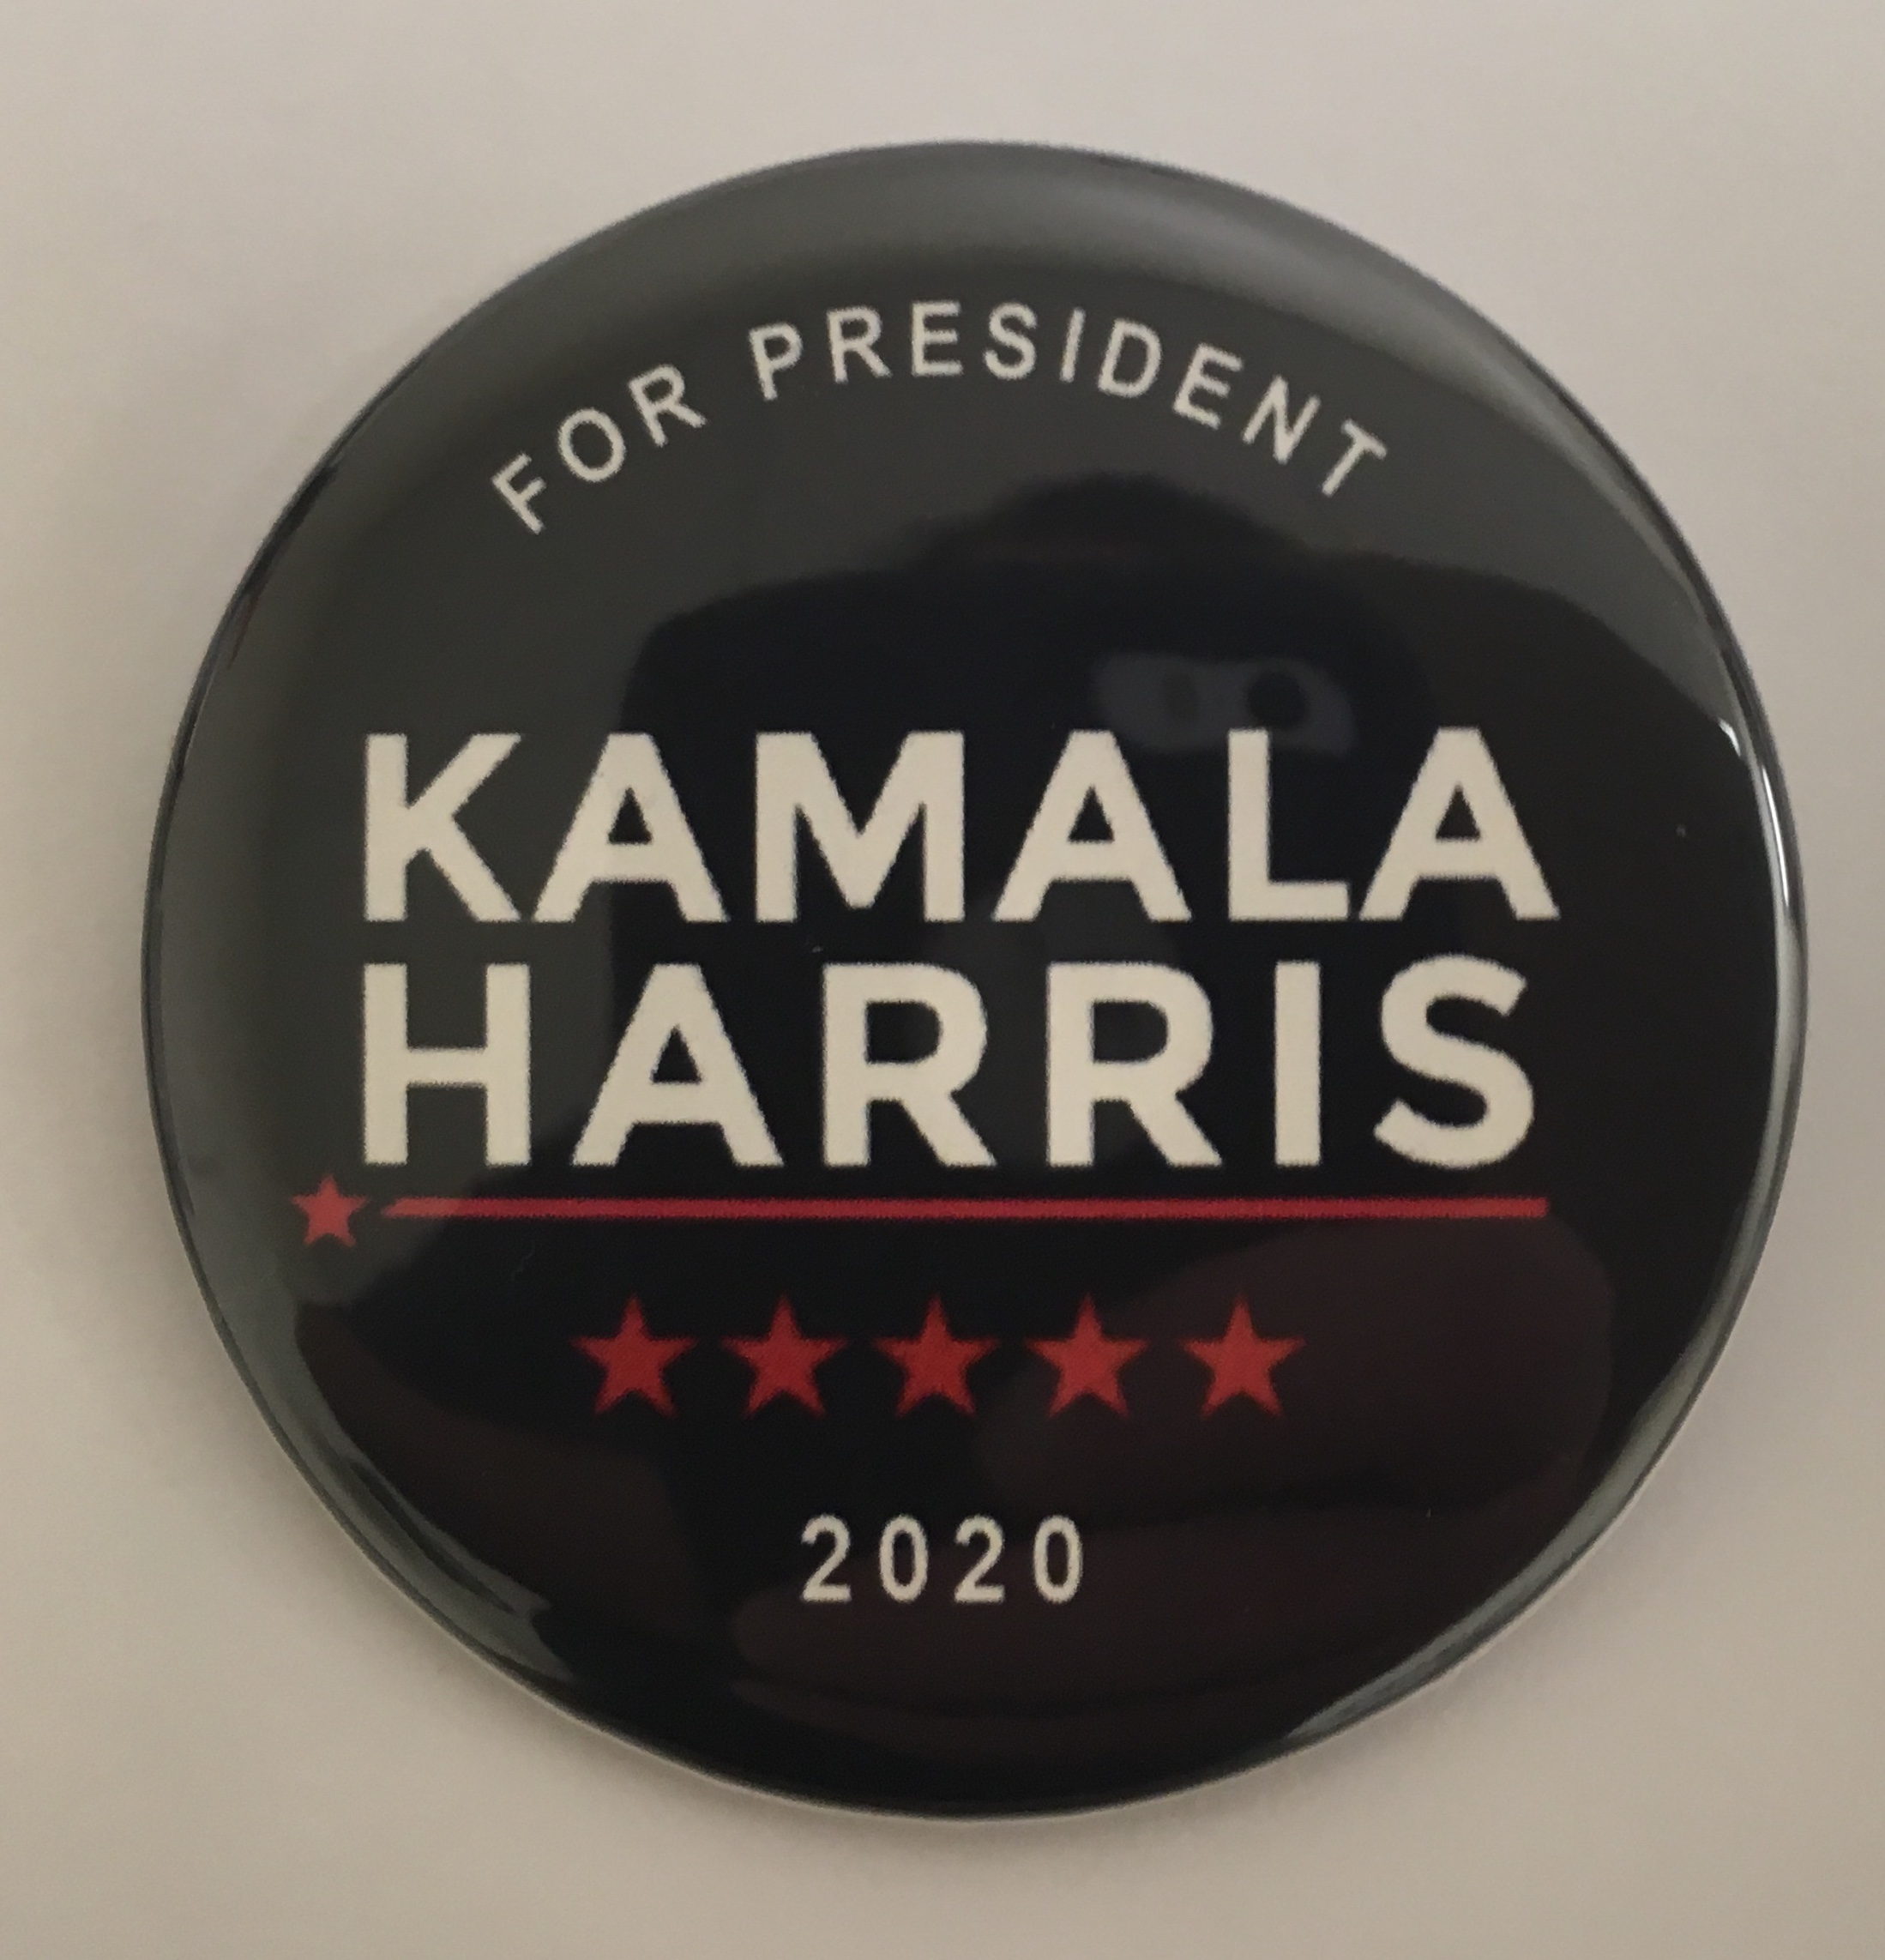 For President Kamala Harris 2020 Campaign Button Harris 701 Presidentialelection Com